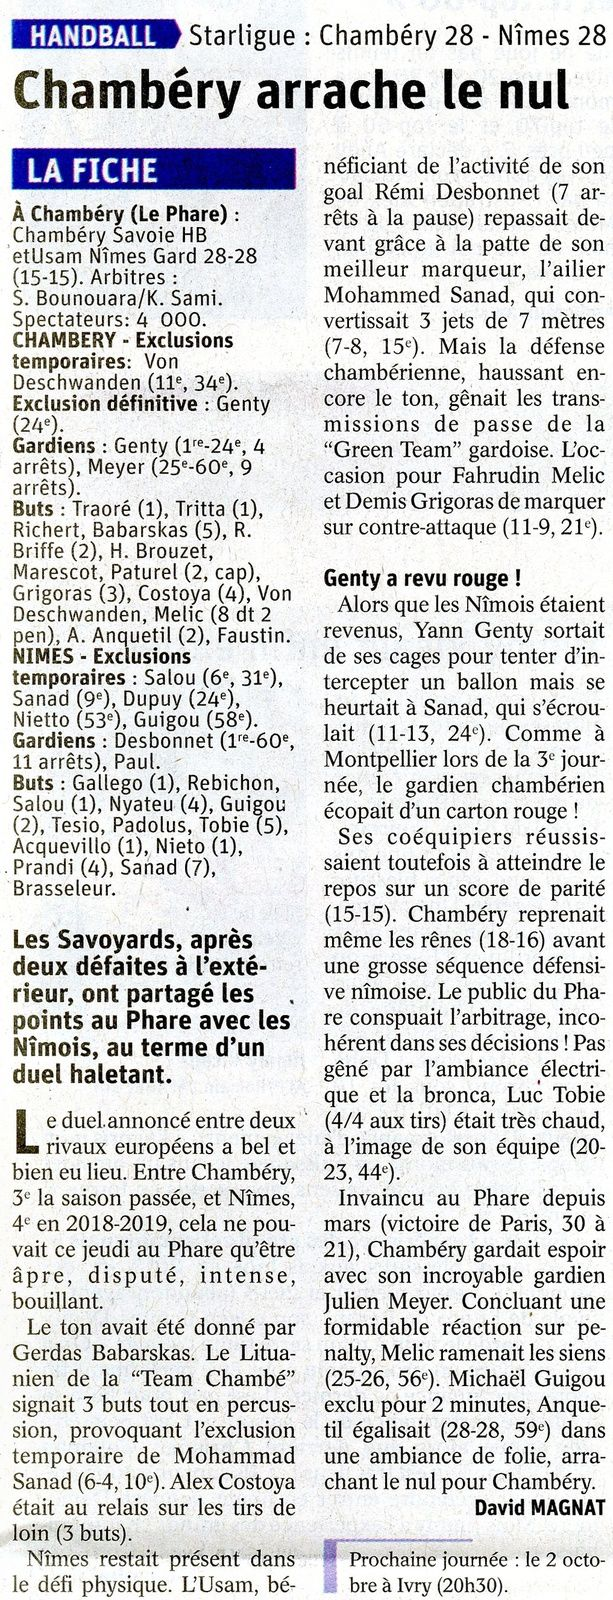 Article DL LSL après CHAMBERY - NÎMES 27 septembre 2019 par David MAGNAT